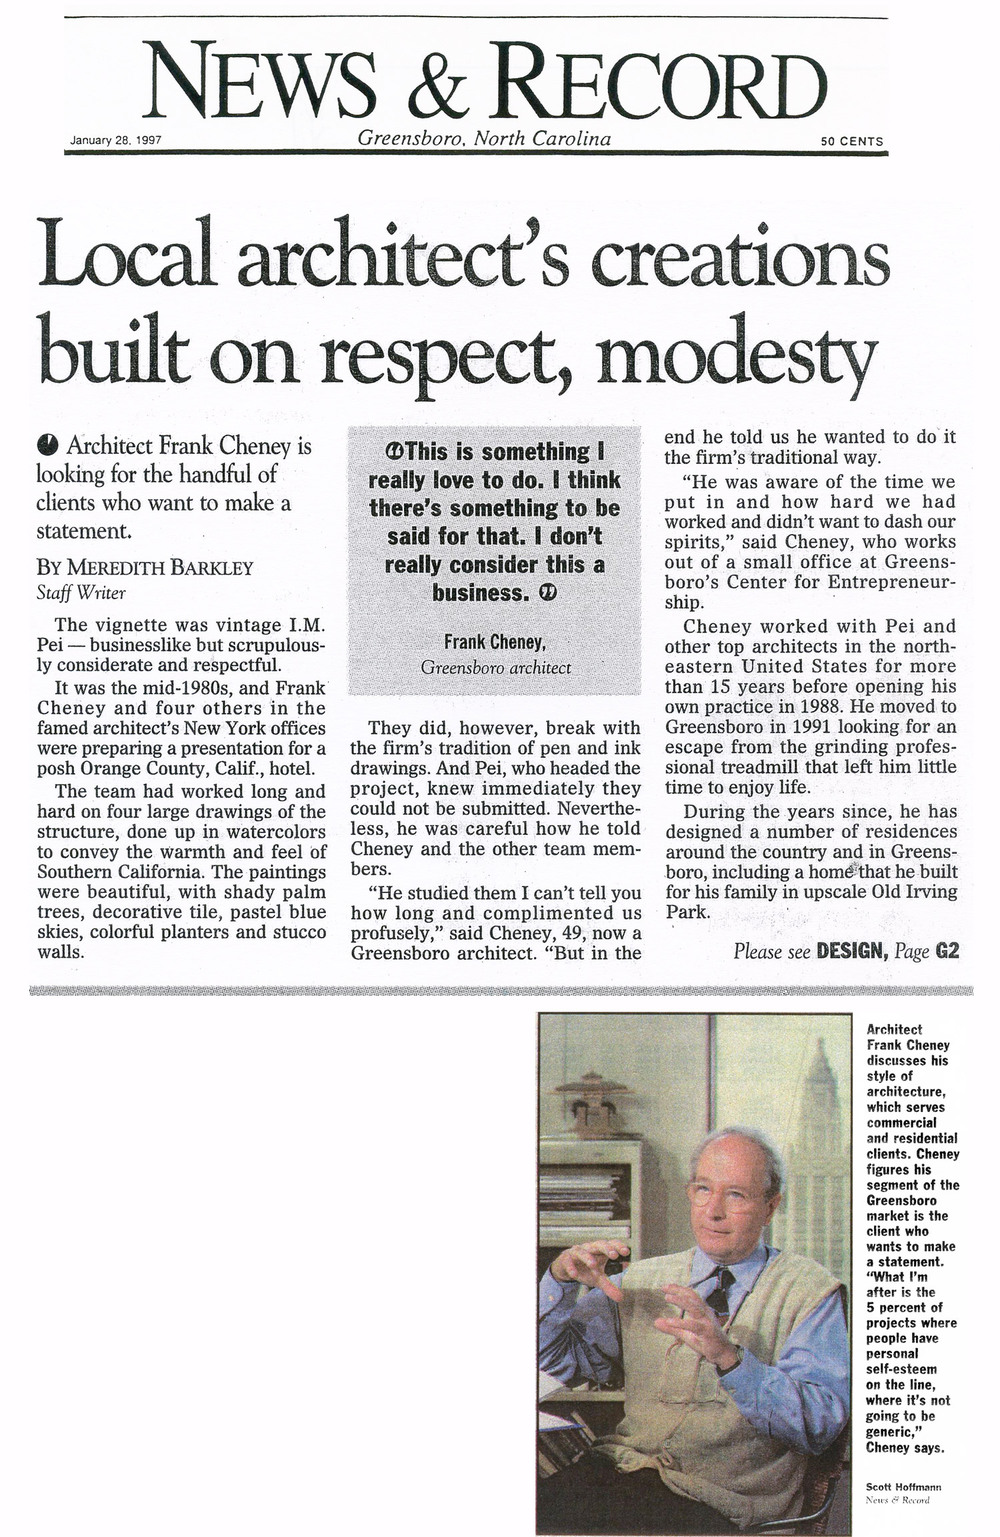 frank-cheney-architect-greensboro-news-and-record-clip.jpg